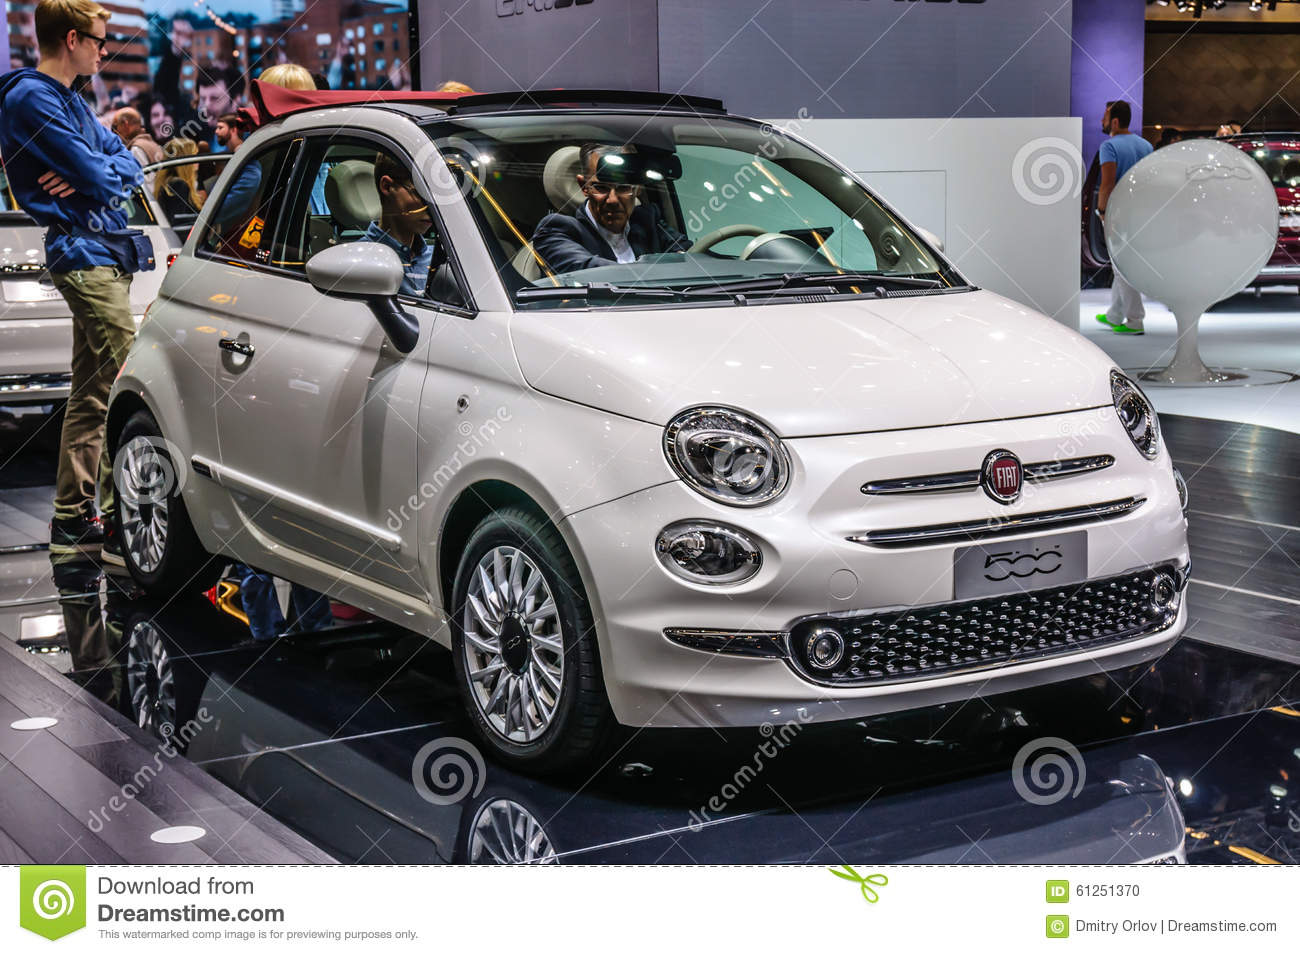 frankfurt sept 2015 fiat 500 presented at iaa international m editorial image image 61251370. Black Bedroom Furniture Sets. Home Design Ideas